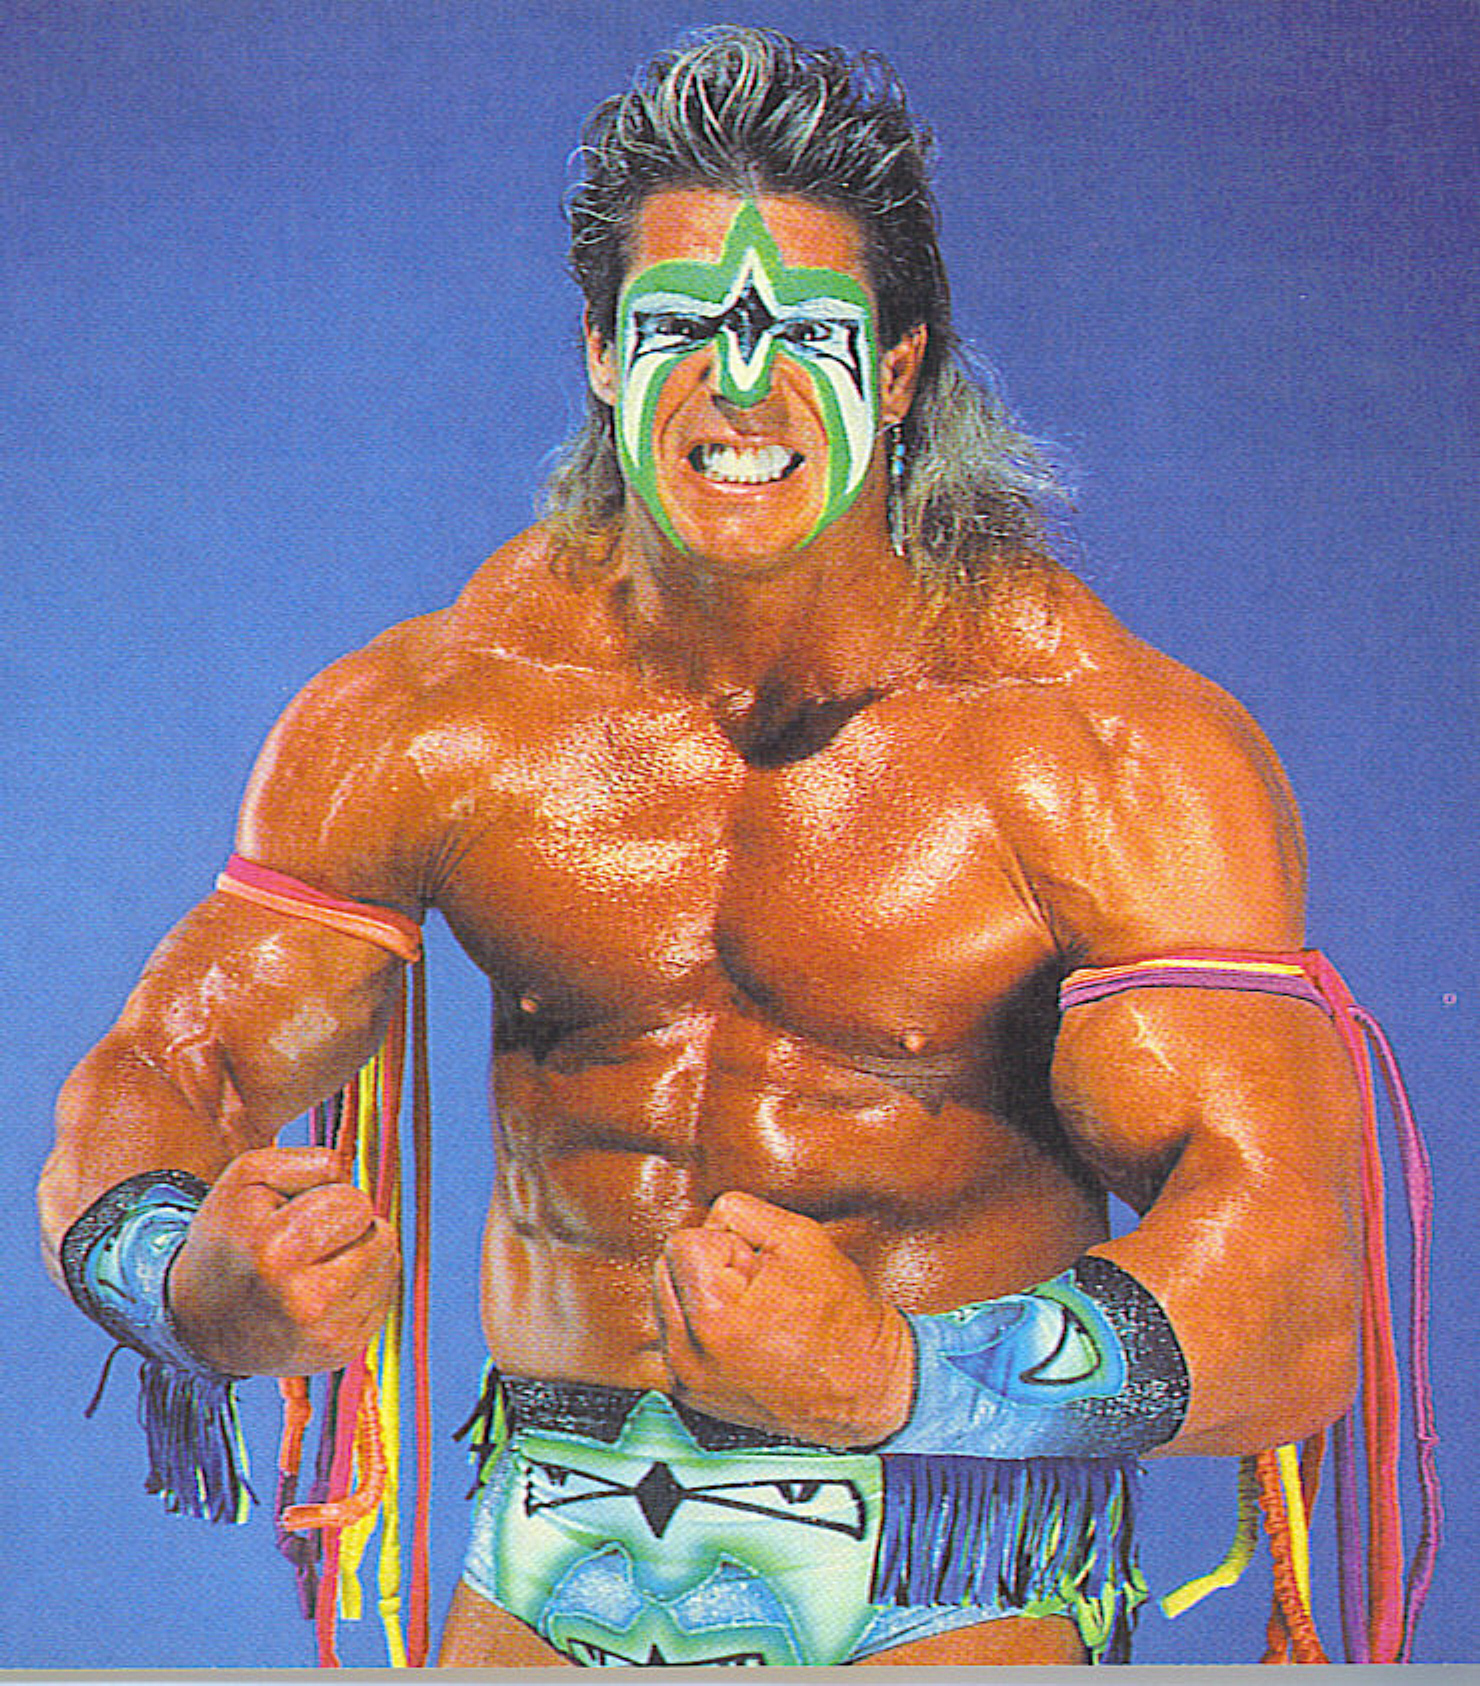 ultimate warrior hall of fame - photo #31